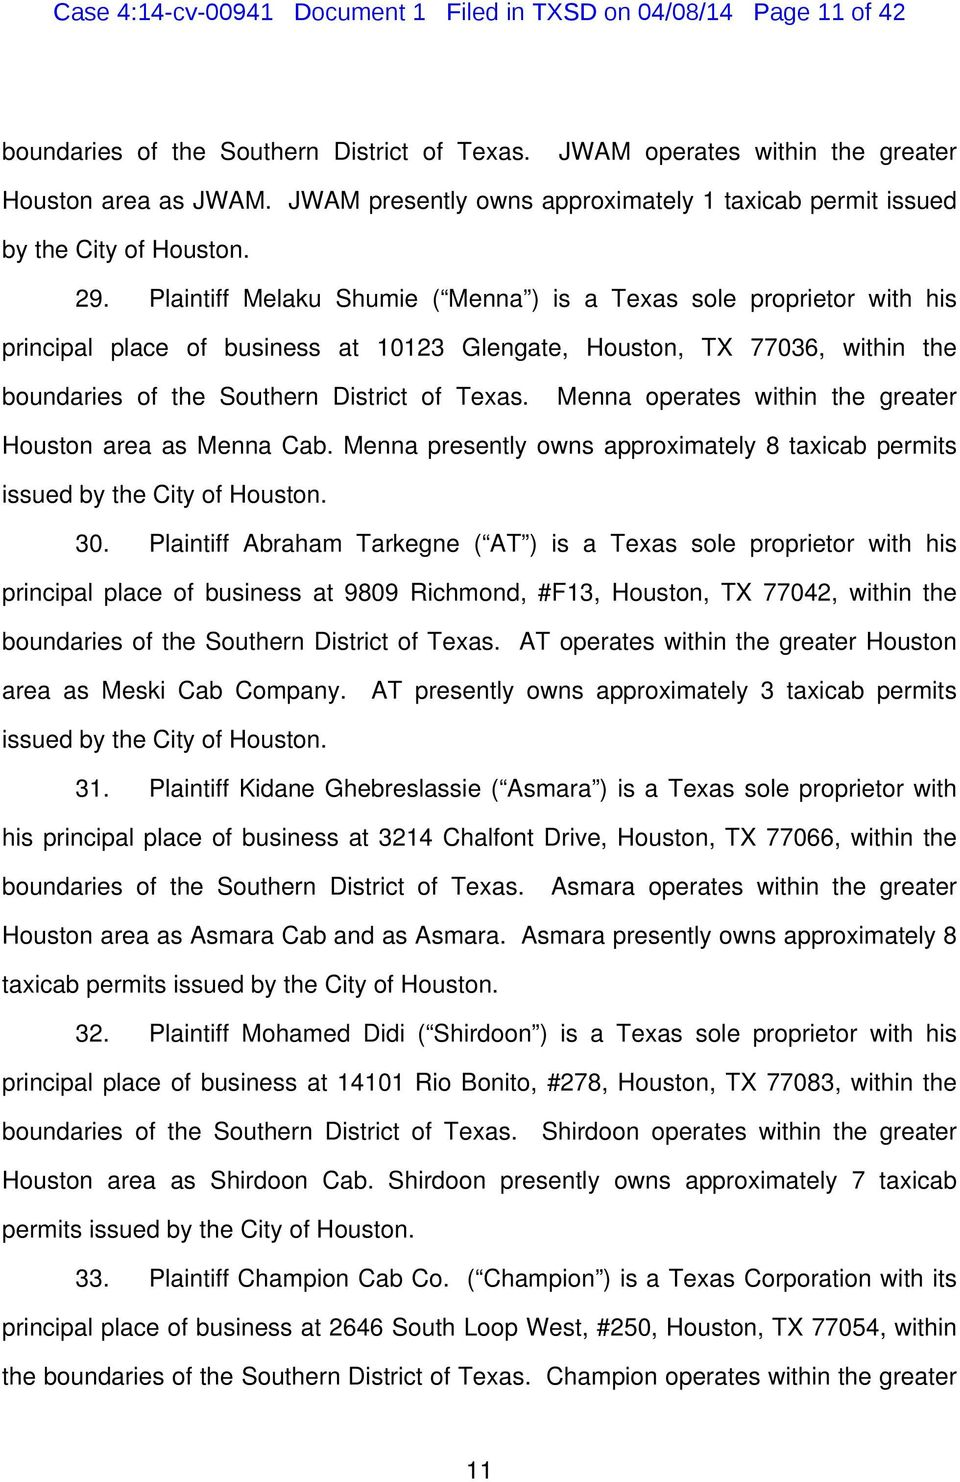 Plaintiff Melaku Shumie ( Menna ) is a Texas sole proprietor with his principal place of business at 10123 Glengate, Houston, TX 77036, within the boundaries of the Southern District of Texas.